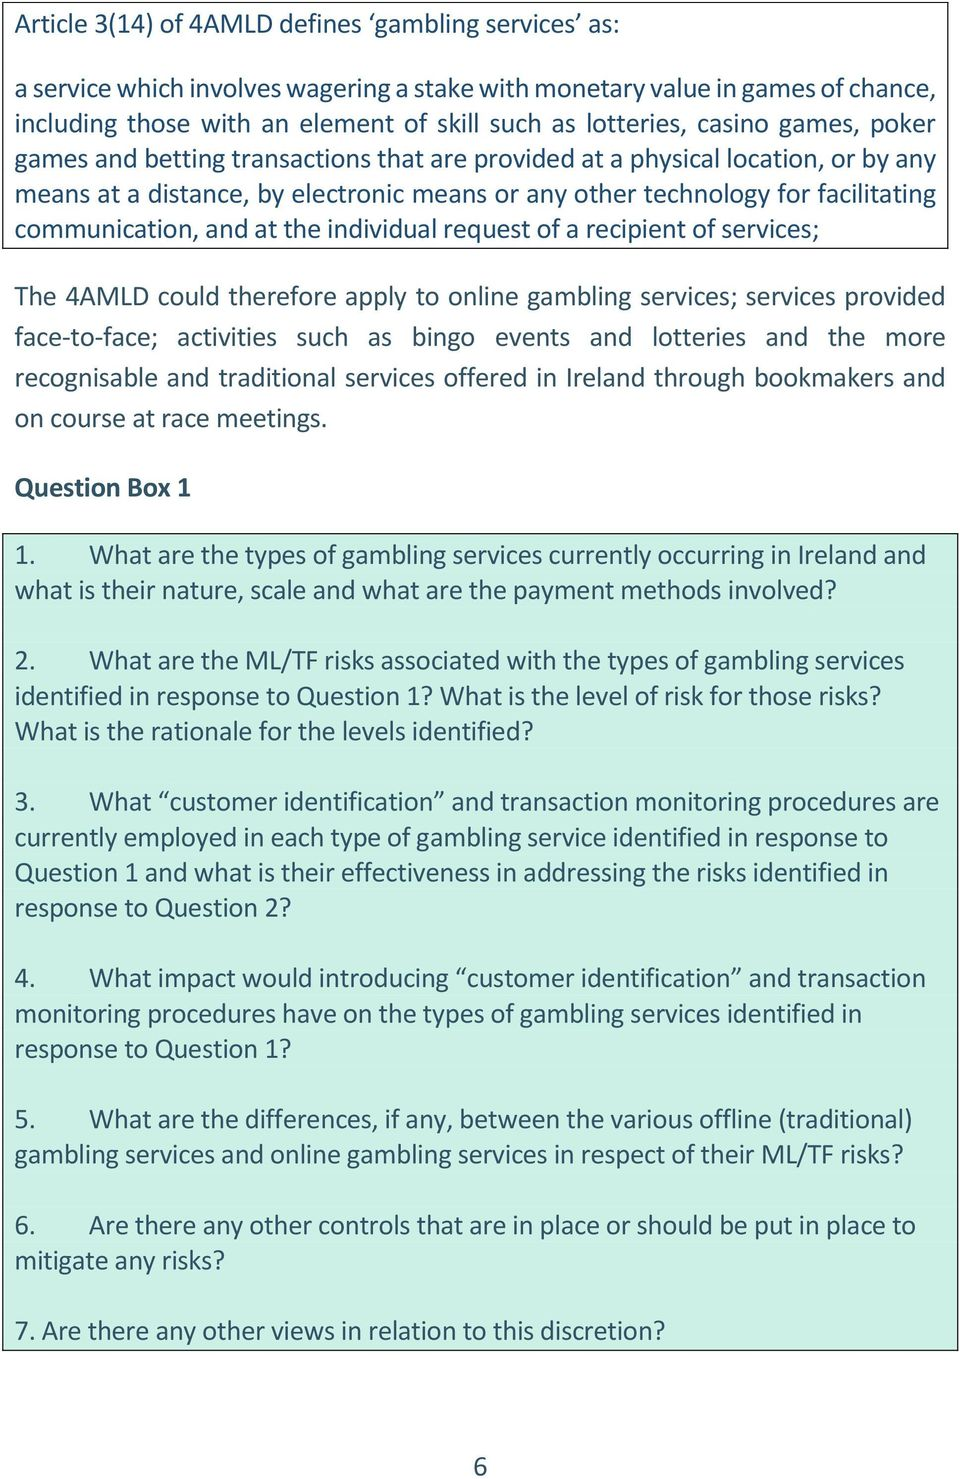 and at the individual request of a recipient of services; The 4AMLD could therefore apply to online gambling services; services provided face-to-face; activities such as bingo events and lotteries